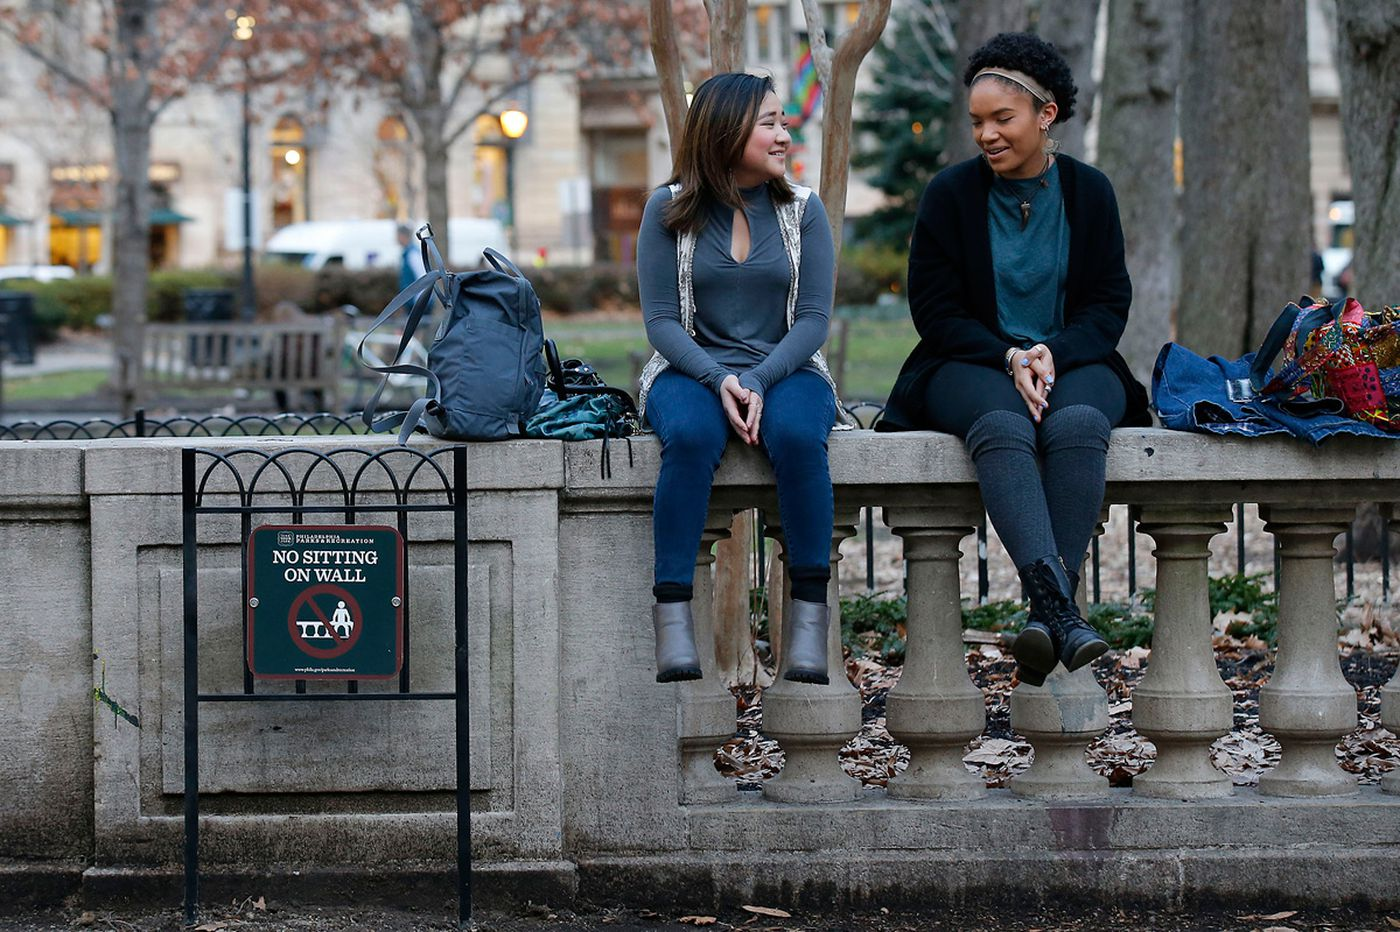 After loitering complaints, city bans wall sitting in Rittenhouse Square